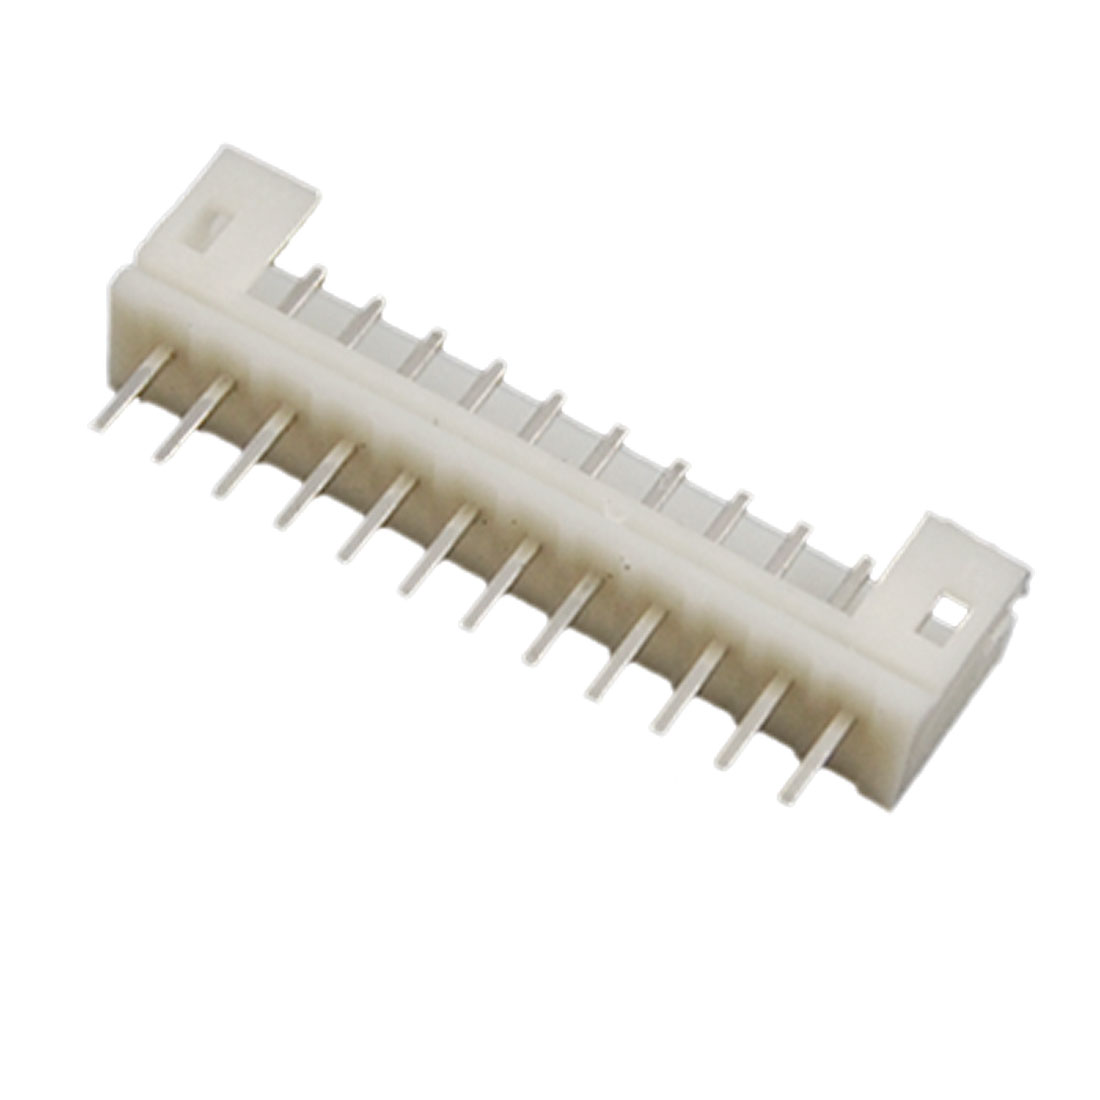 100 Pcs 2mm Pitch 12 Pins PCB Pressure Welding Bar Connector White